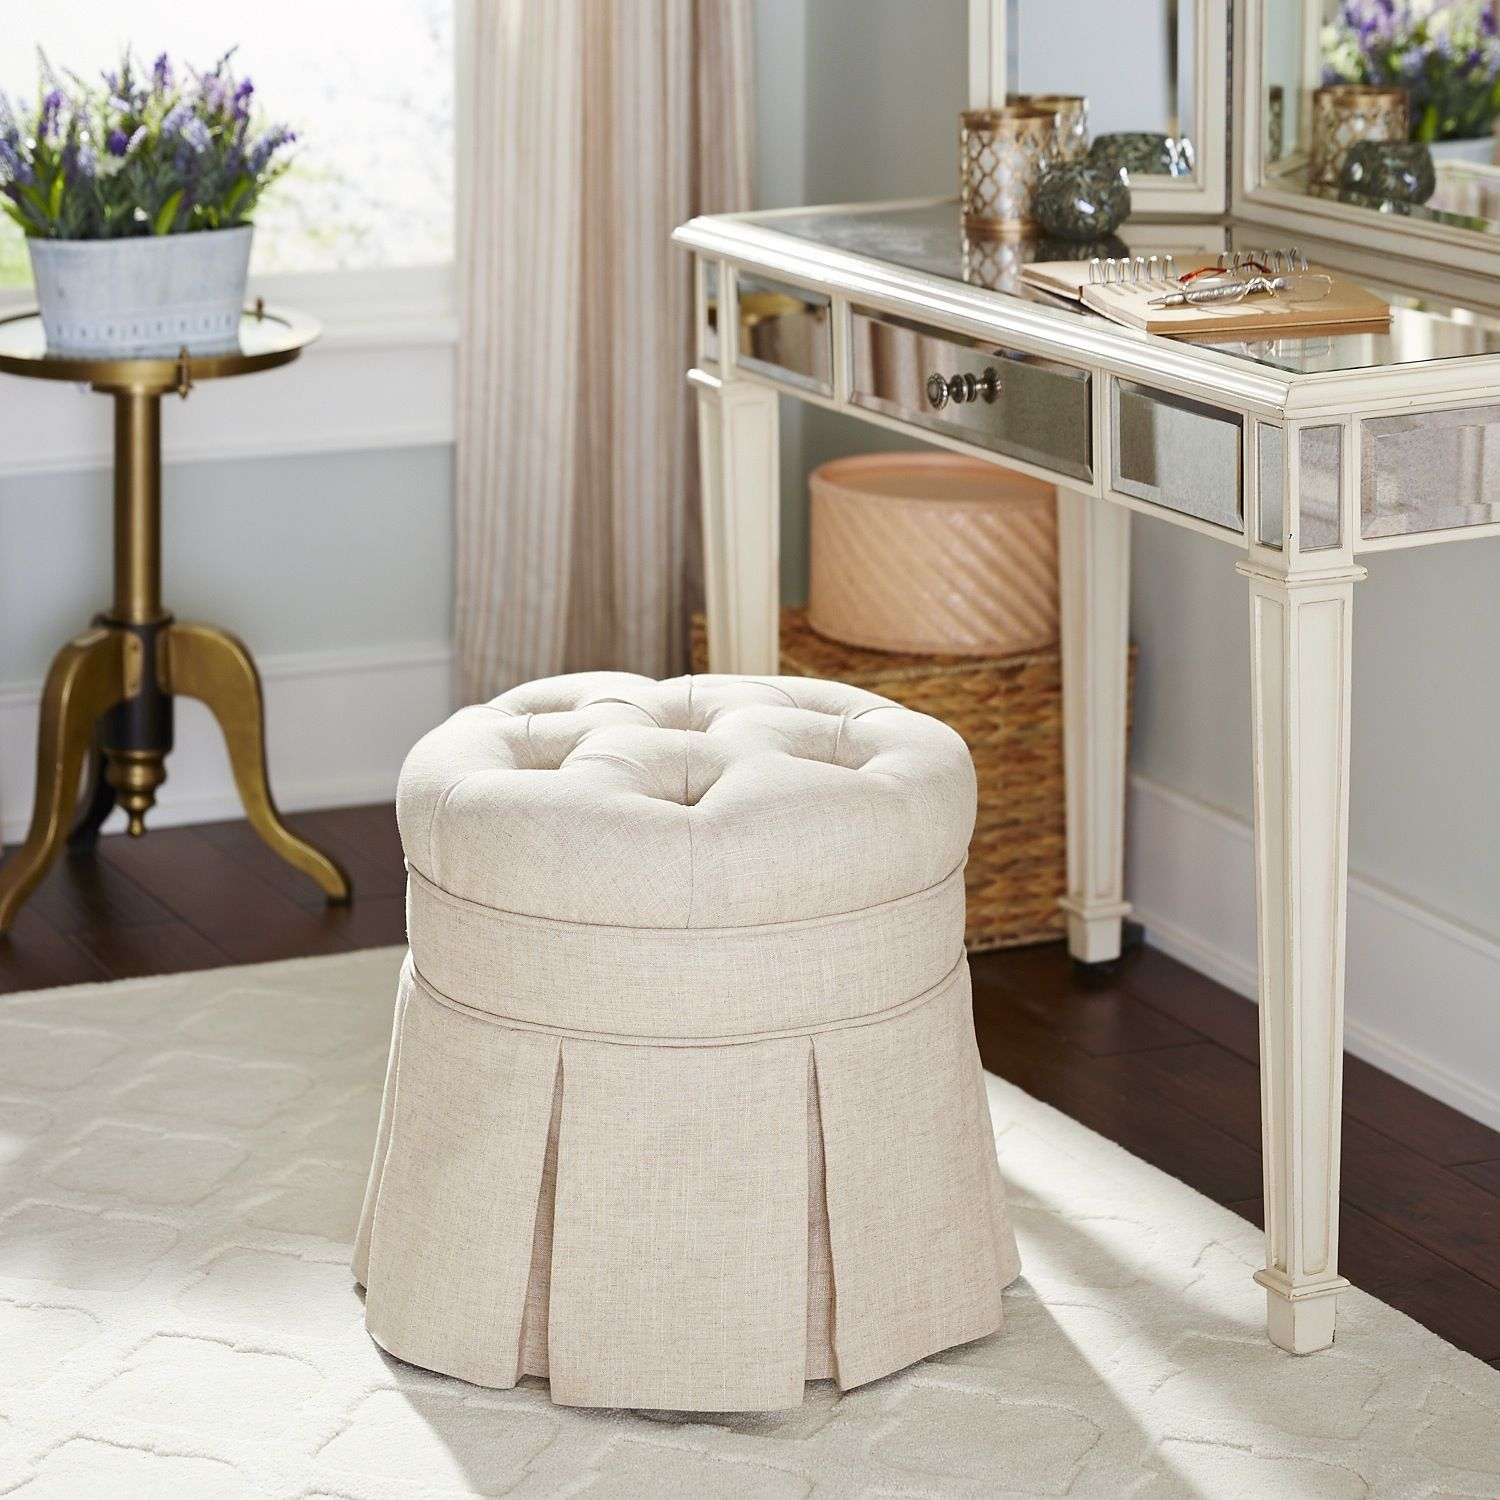 Is Pier One Furniture Good Quality Americas Best Furniture Check More At Http Cacophonouscreations Com Vanity Stool Cheap Dining Room Chairs Cottage Chairs